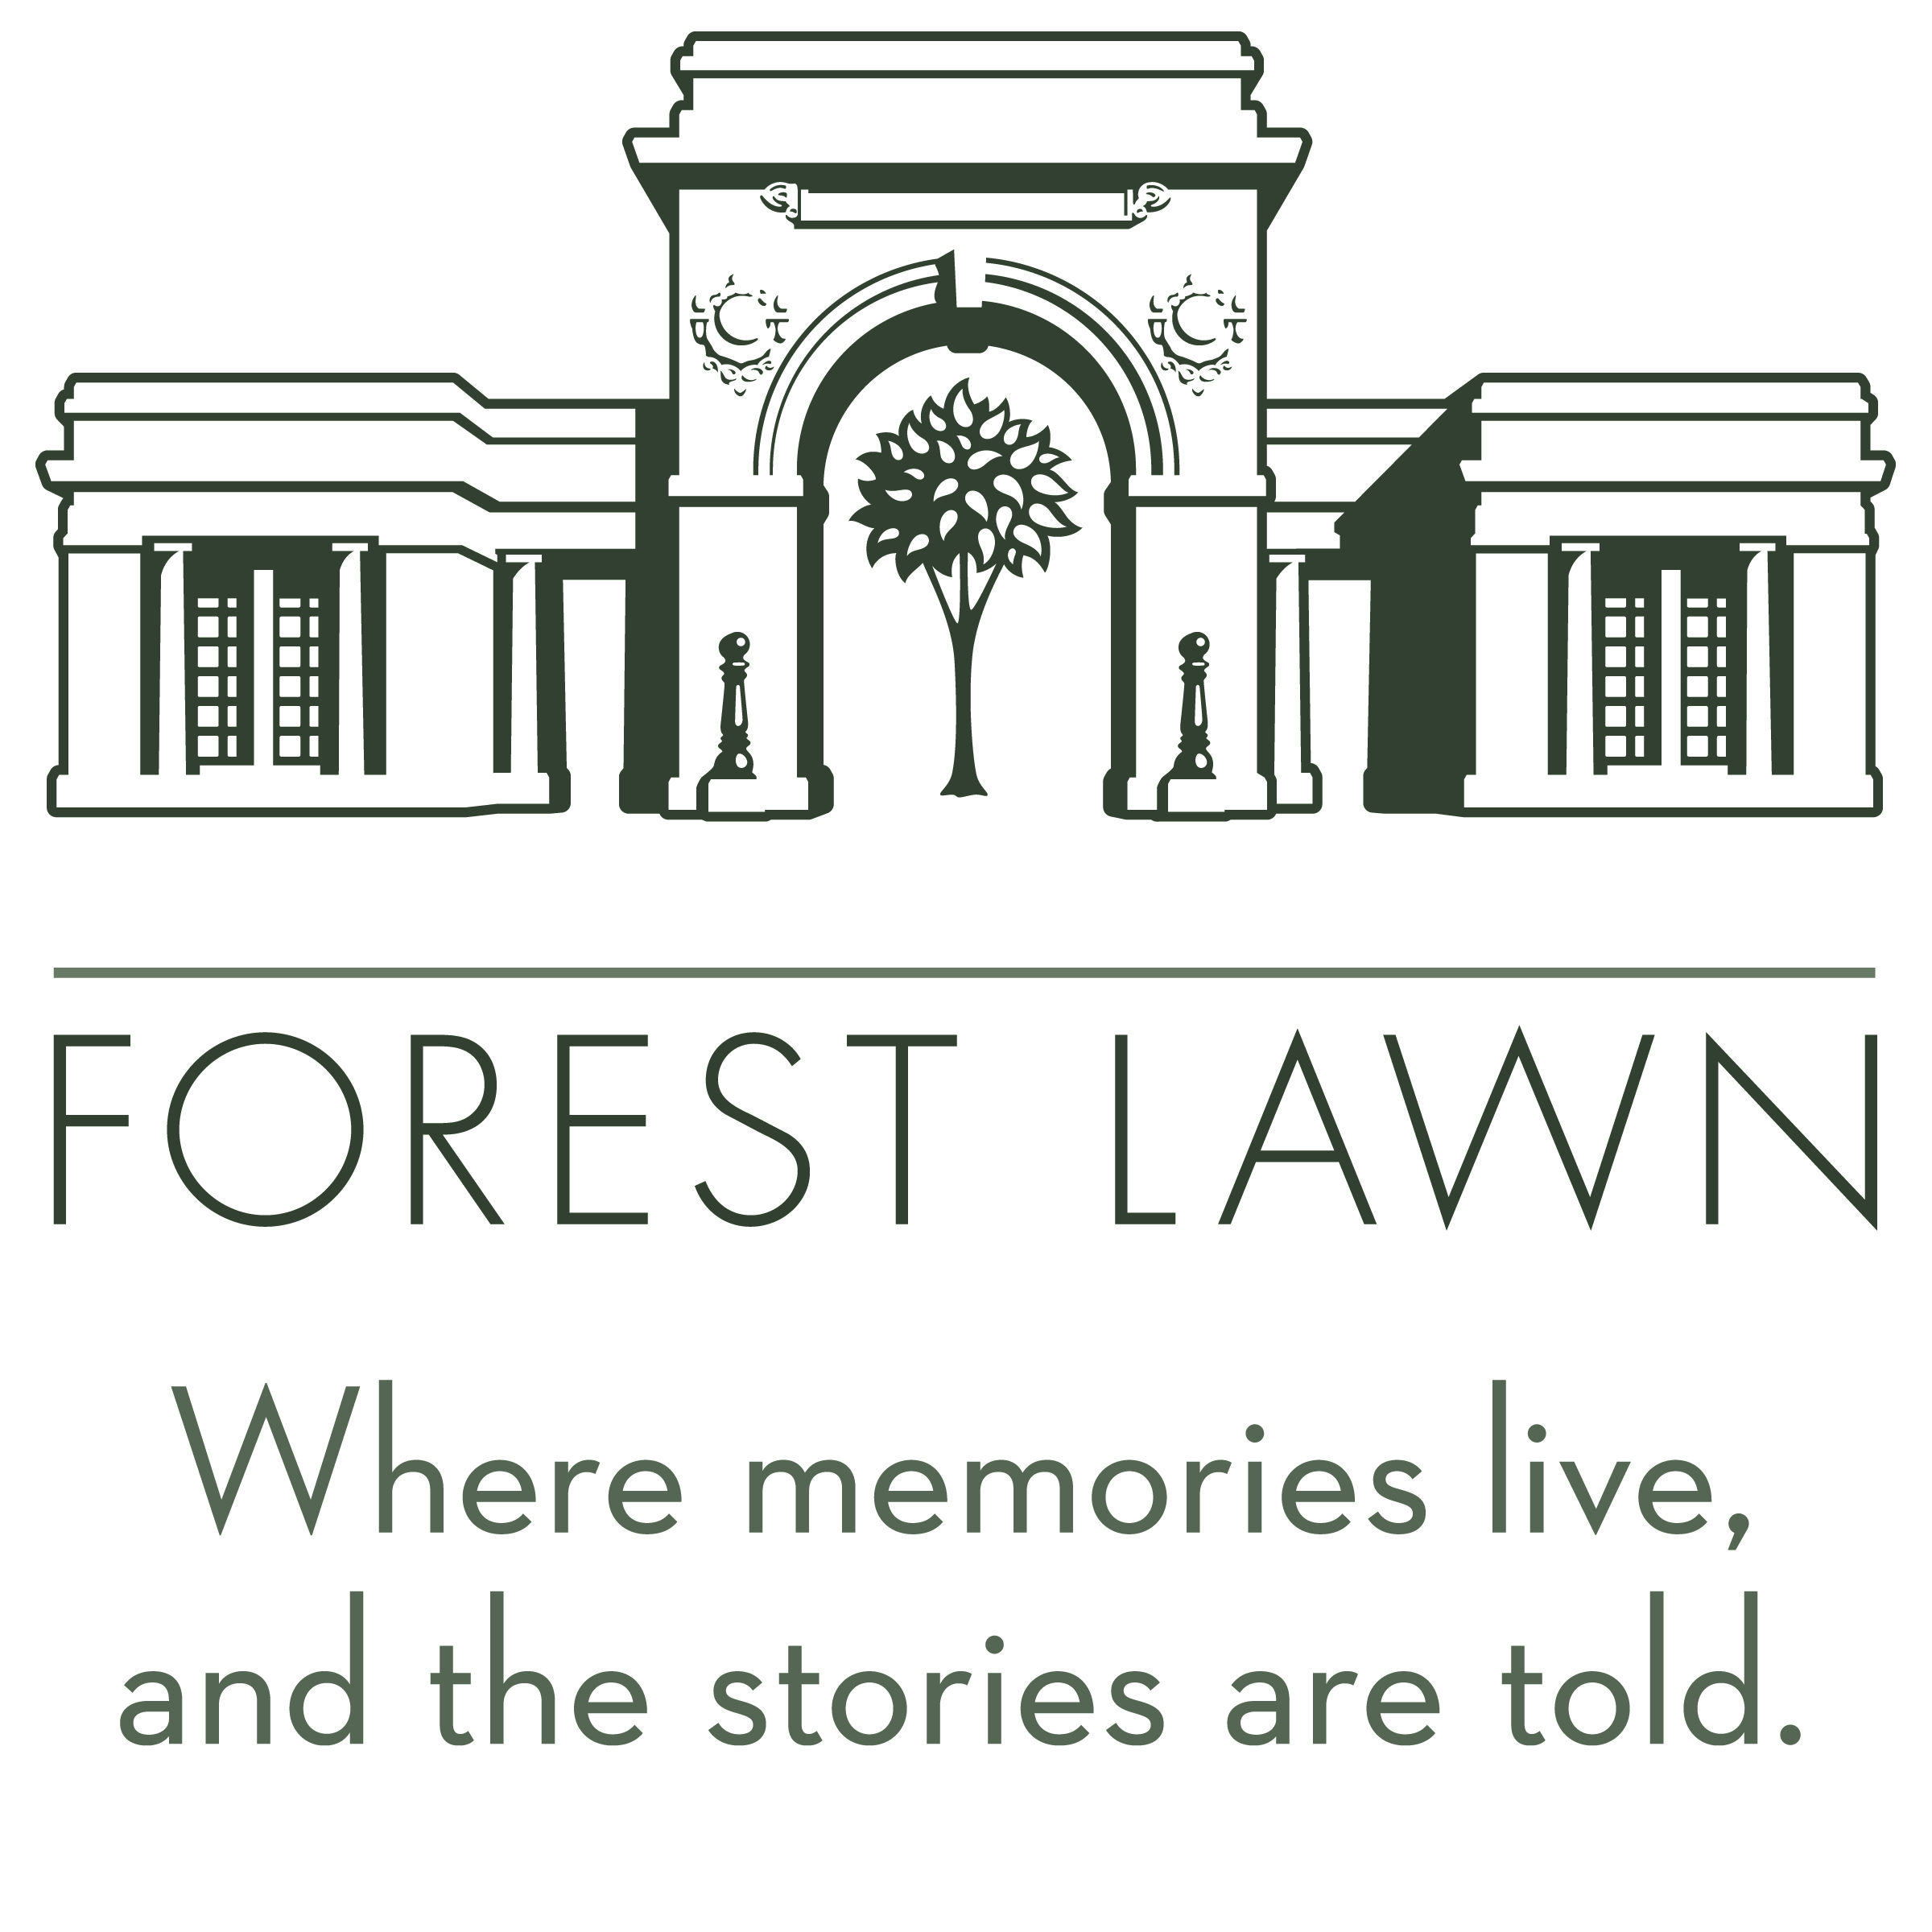 """At the top of this logo is a detailed, greyscale outline of a mausoleum and archway. Underneath the archway is a small tree with leaves. Below that is a grey line. At the bottom of the logo are the words """"Forest Lawn. Where memories live, and the stories are told."""""""